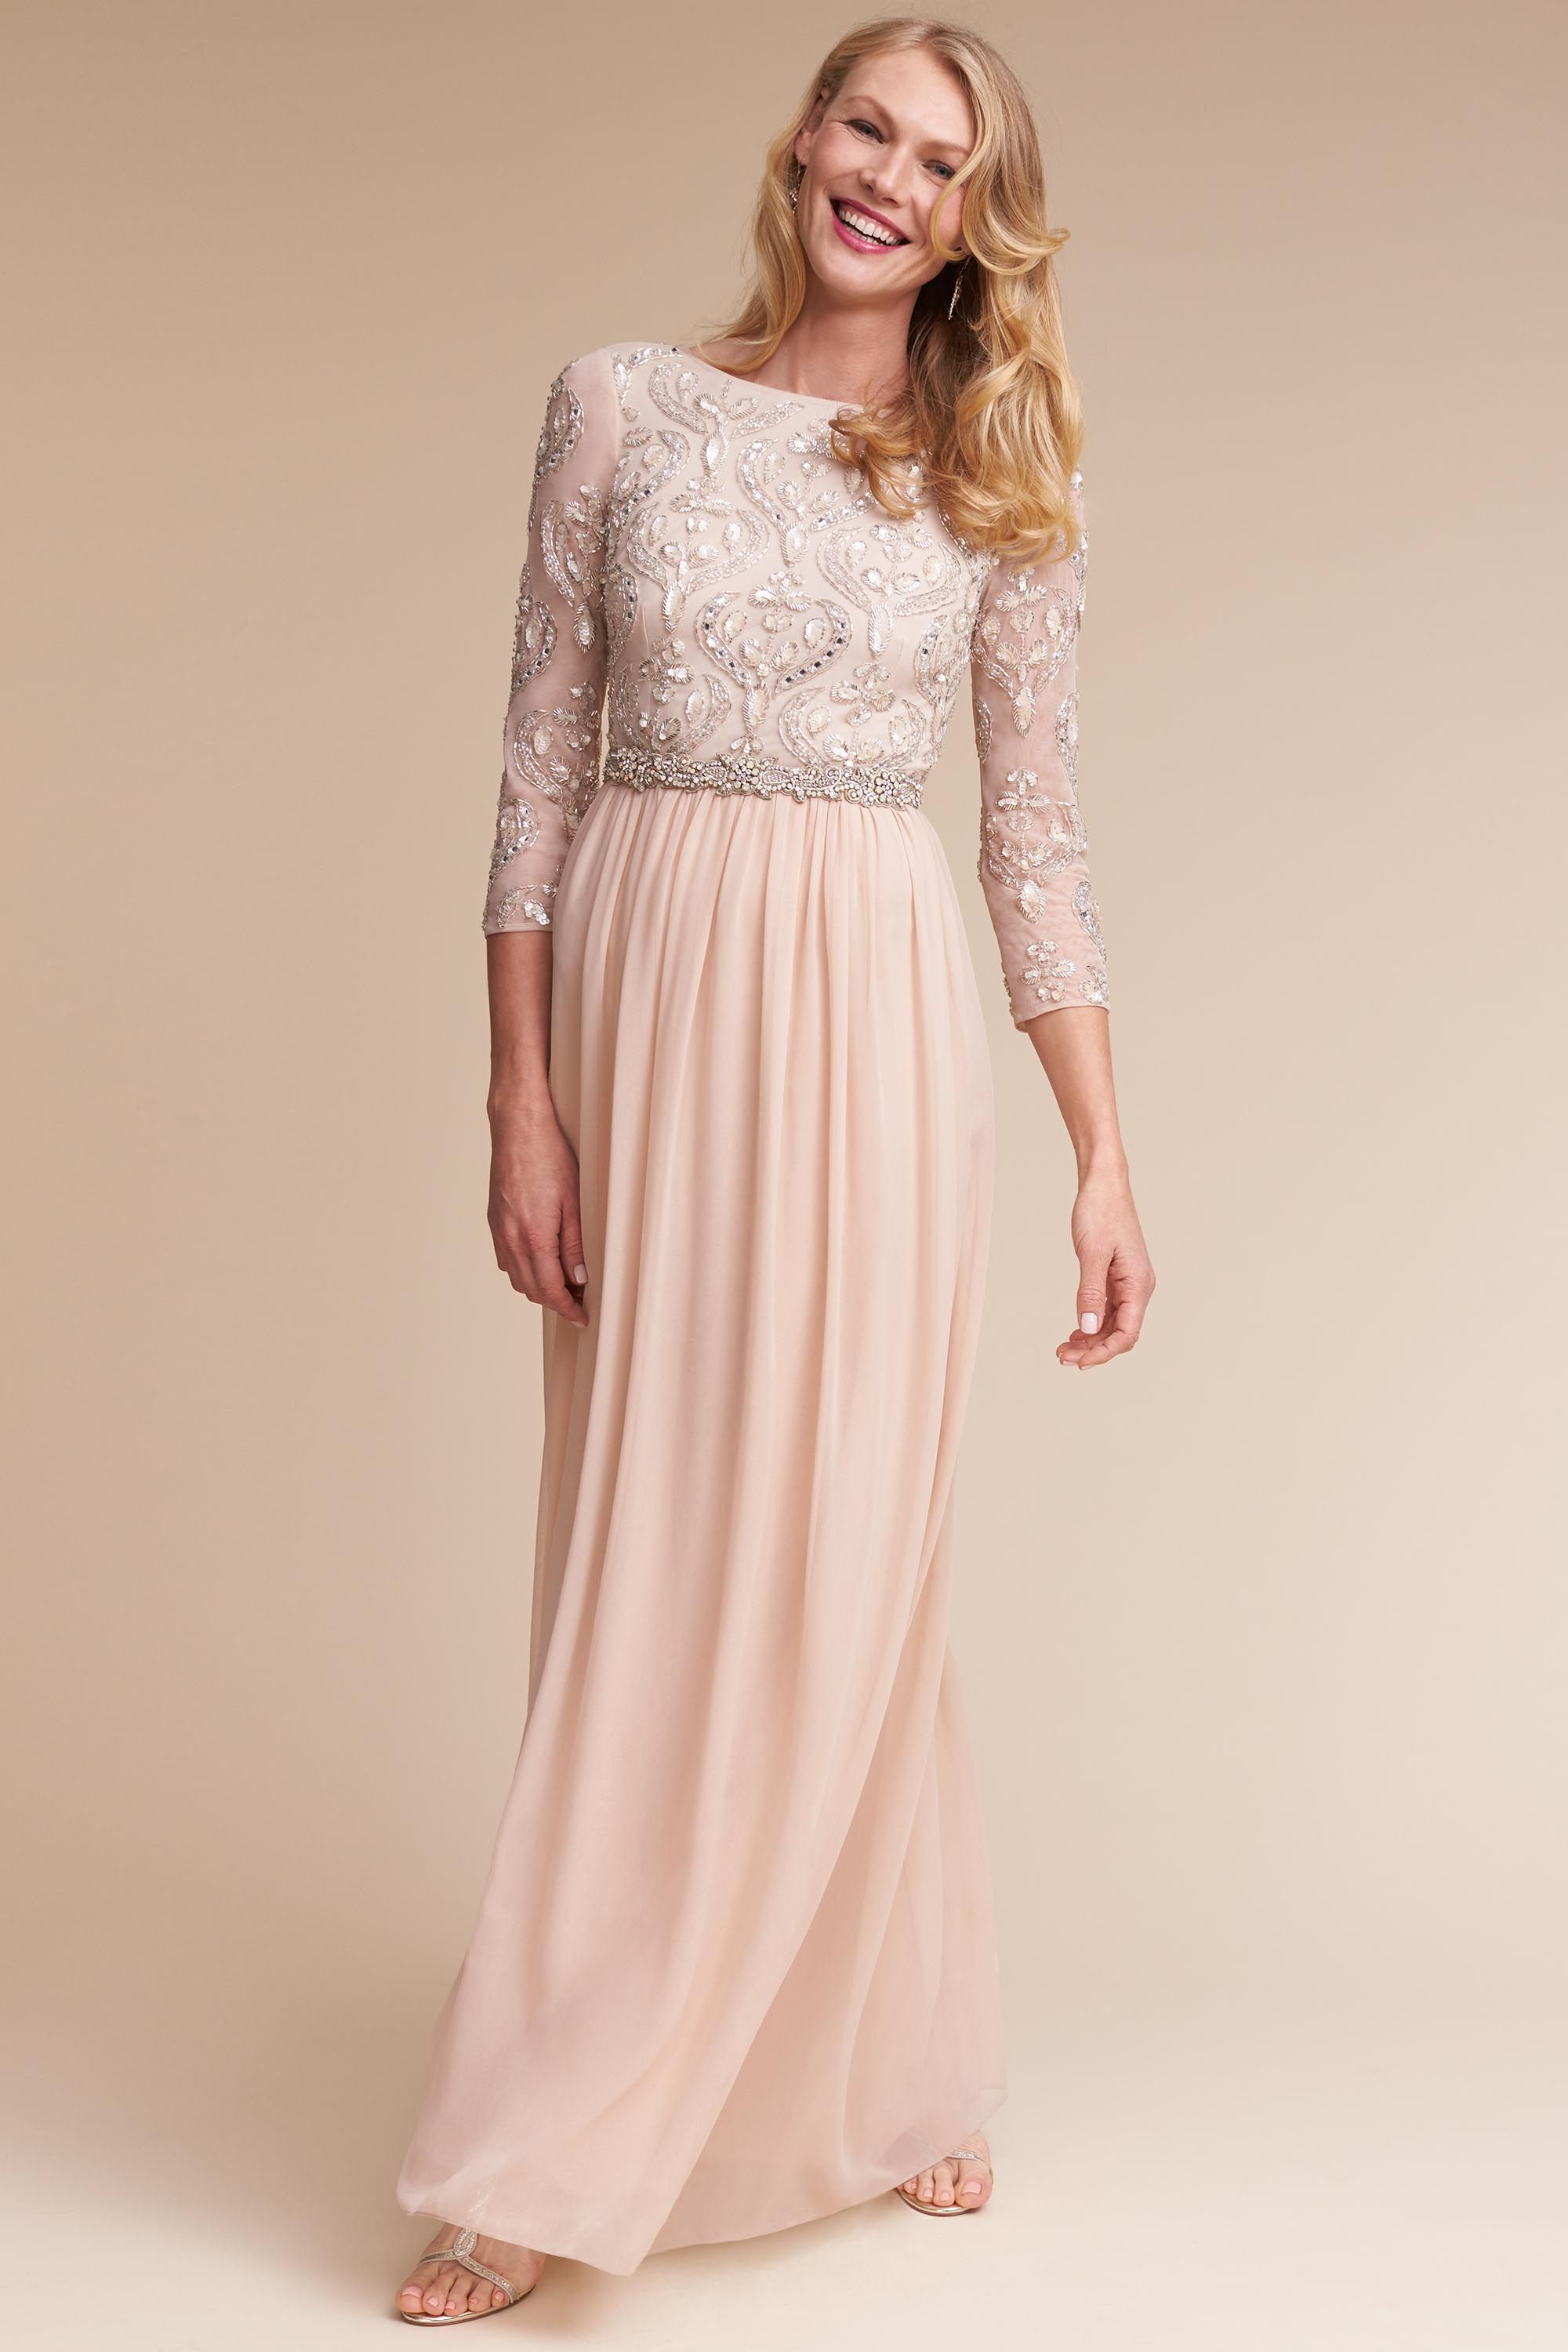 Romantic BHLDN Destination Wedding Dresses - Giada Dress